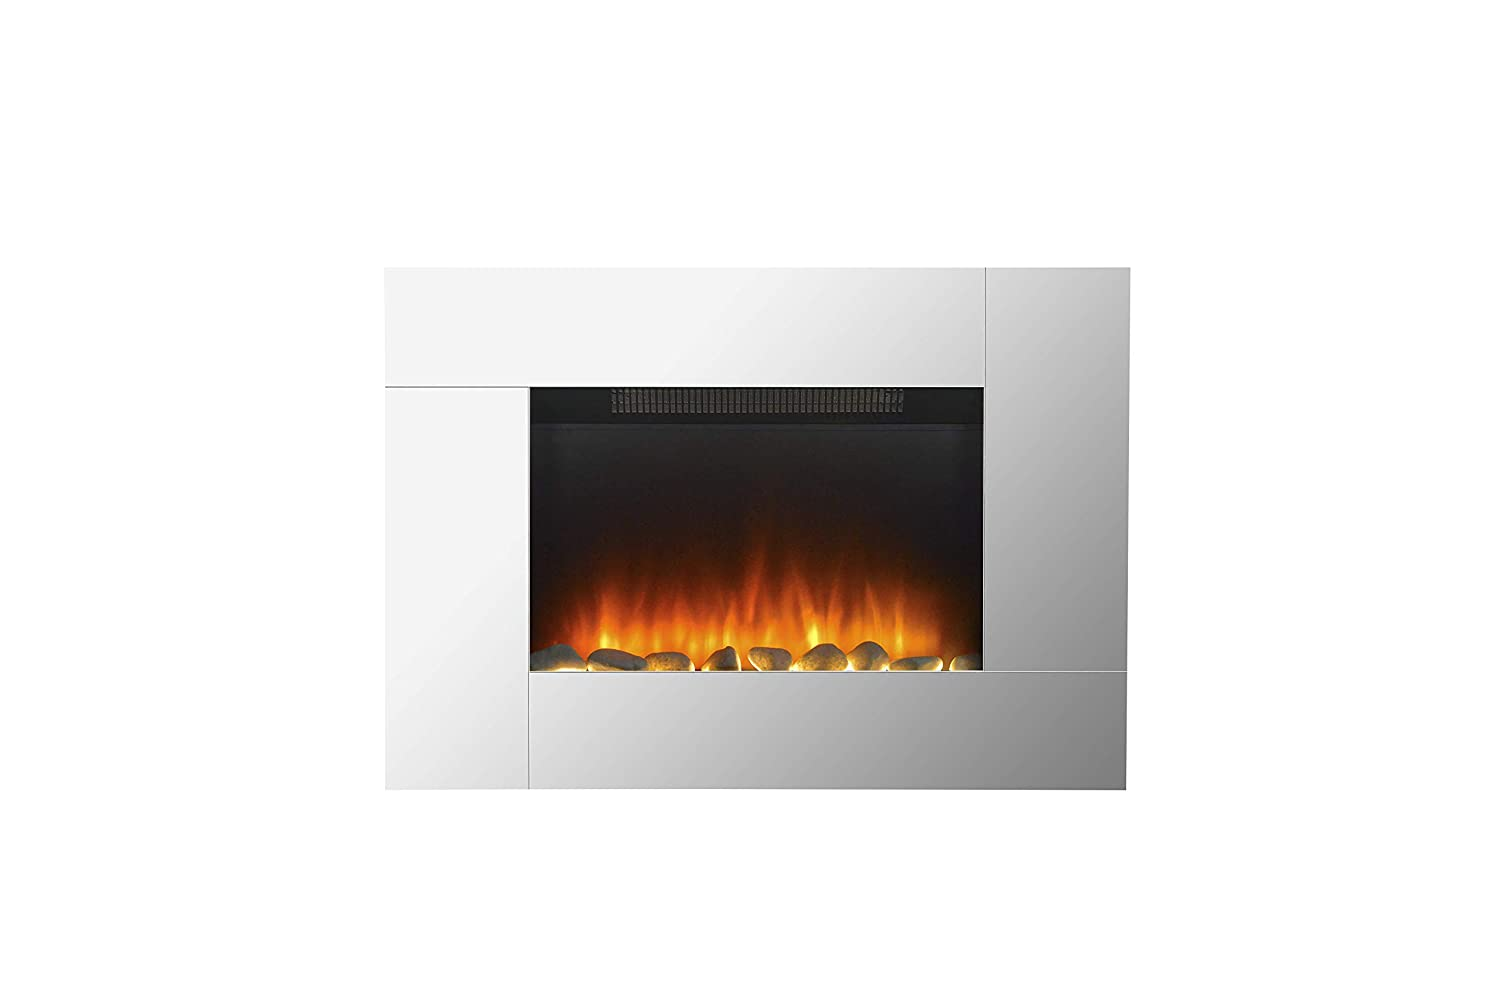 GLOWMASTER Electric Wall Fire Fireplace Mounted Stylish Mirror Glass Flicker Flame Heater GUARANTEED4LESS AGP1276-CHESTER